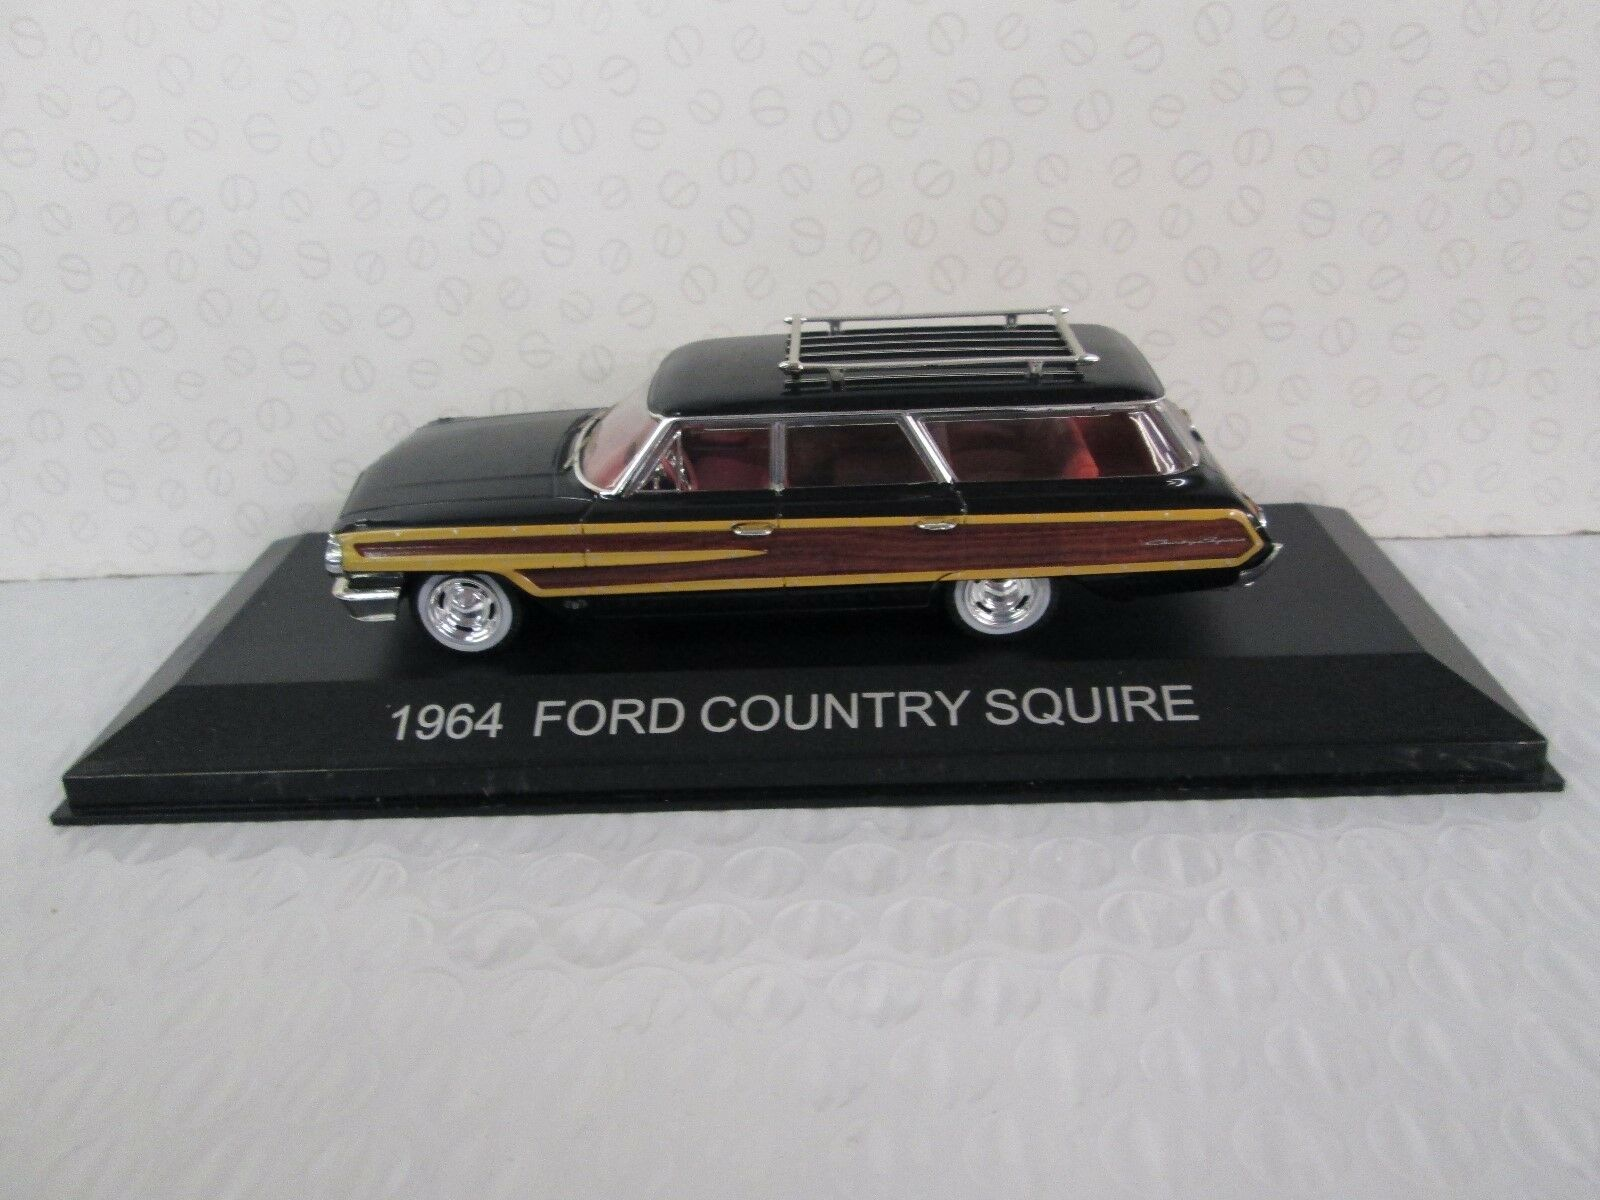 PREMIUM X. Ford Country Squire 1 43 scale. 186918.